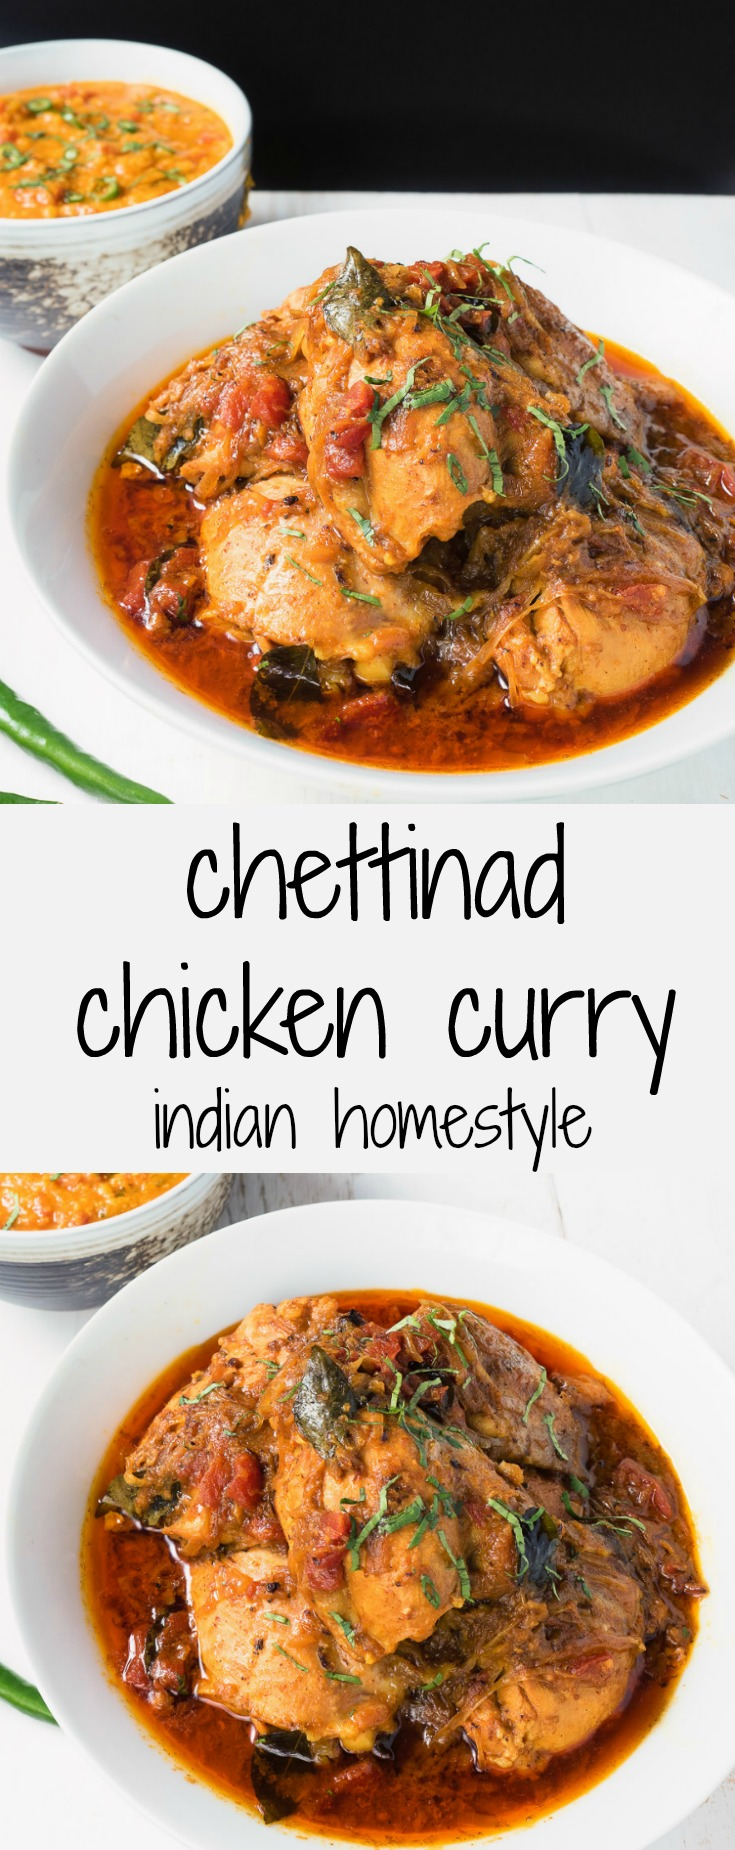 Chettinad chicken curry is a South Indian dish loaded with coconut, spices and curry leaves.